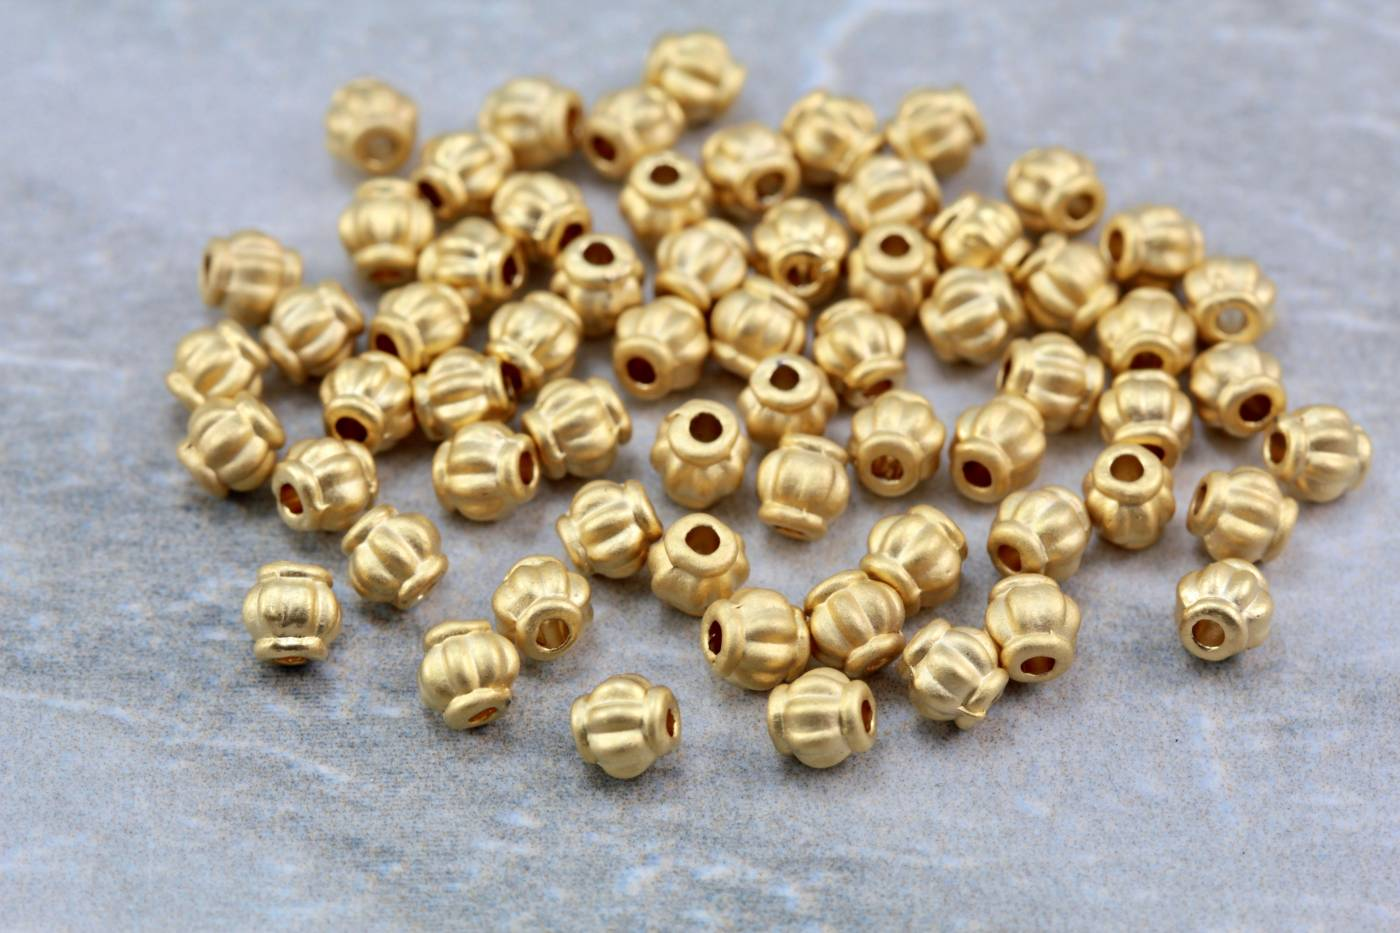 gold-metal-mini-spacer-bead-findings.jpg